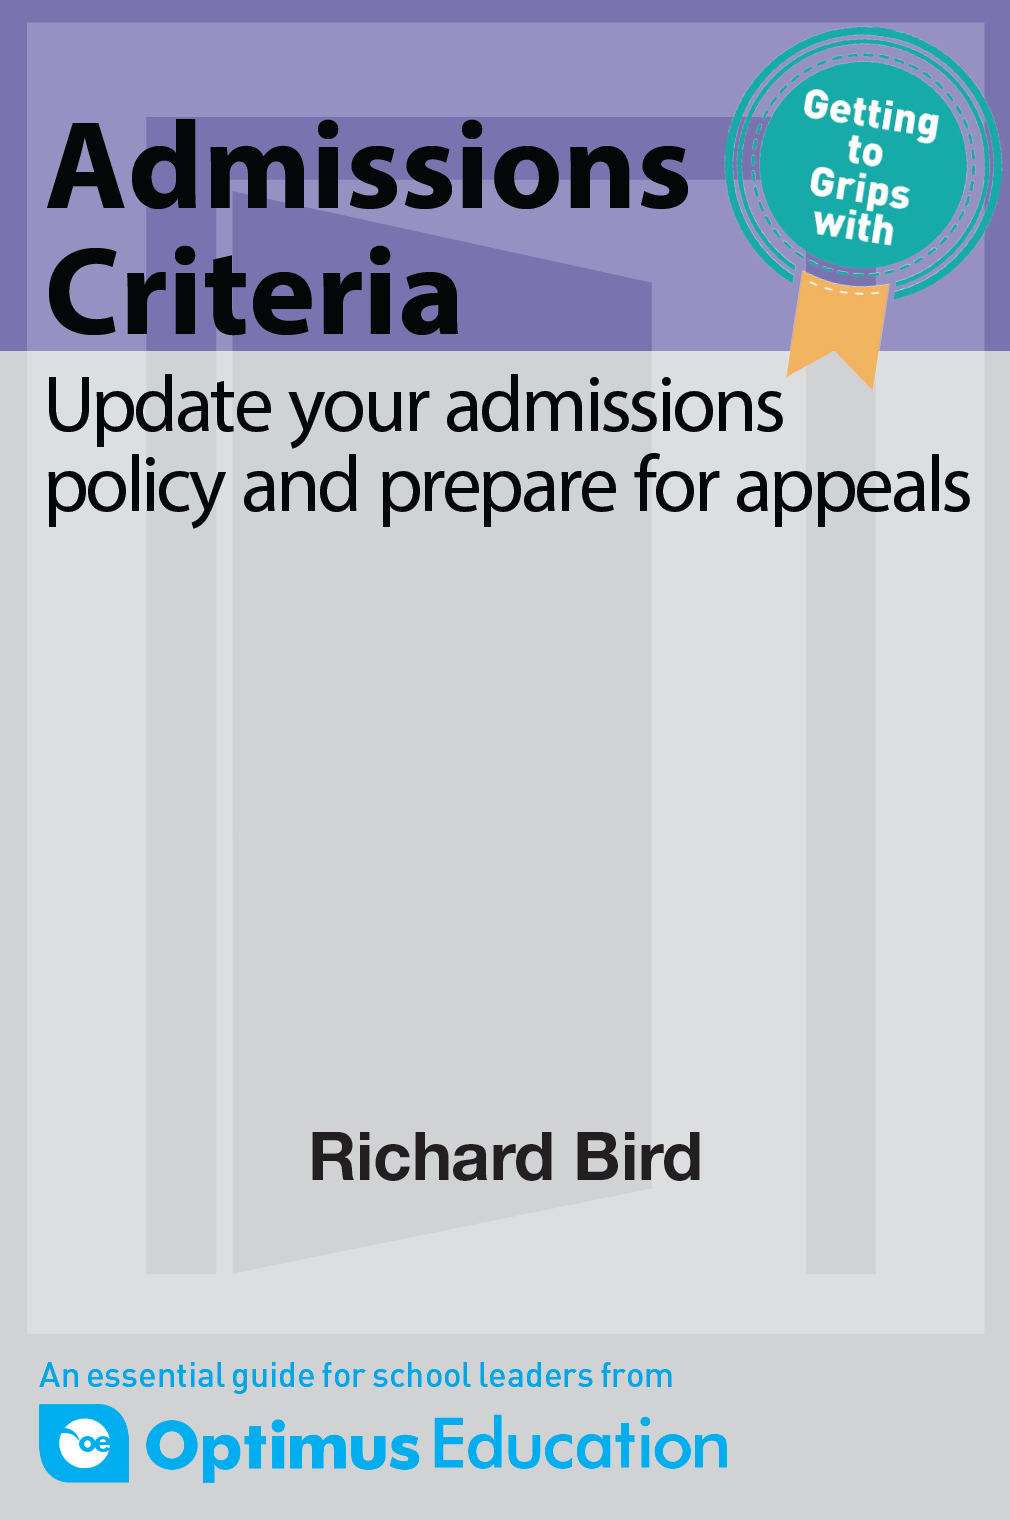 Admissions Criteria: Update your admissions policy and prepare for appeals